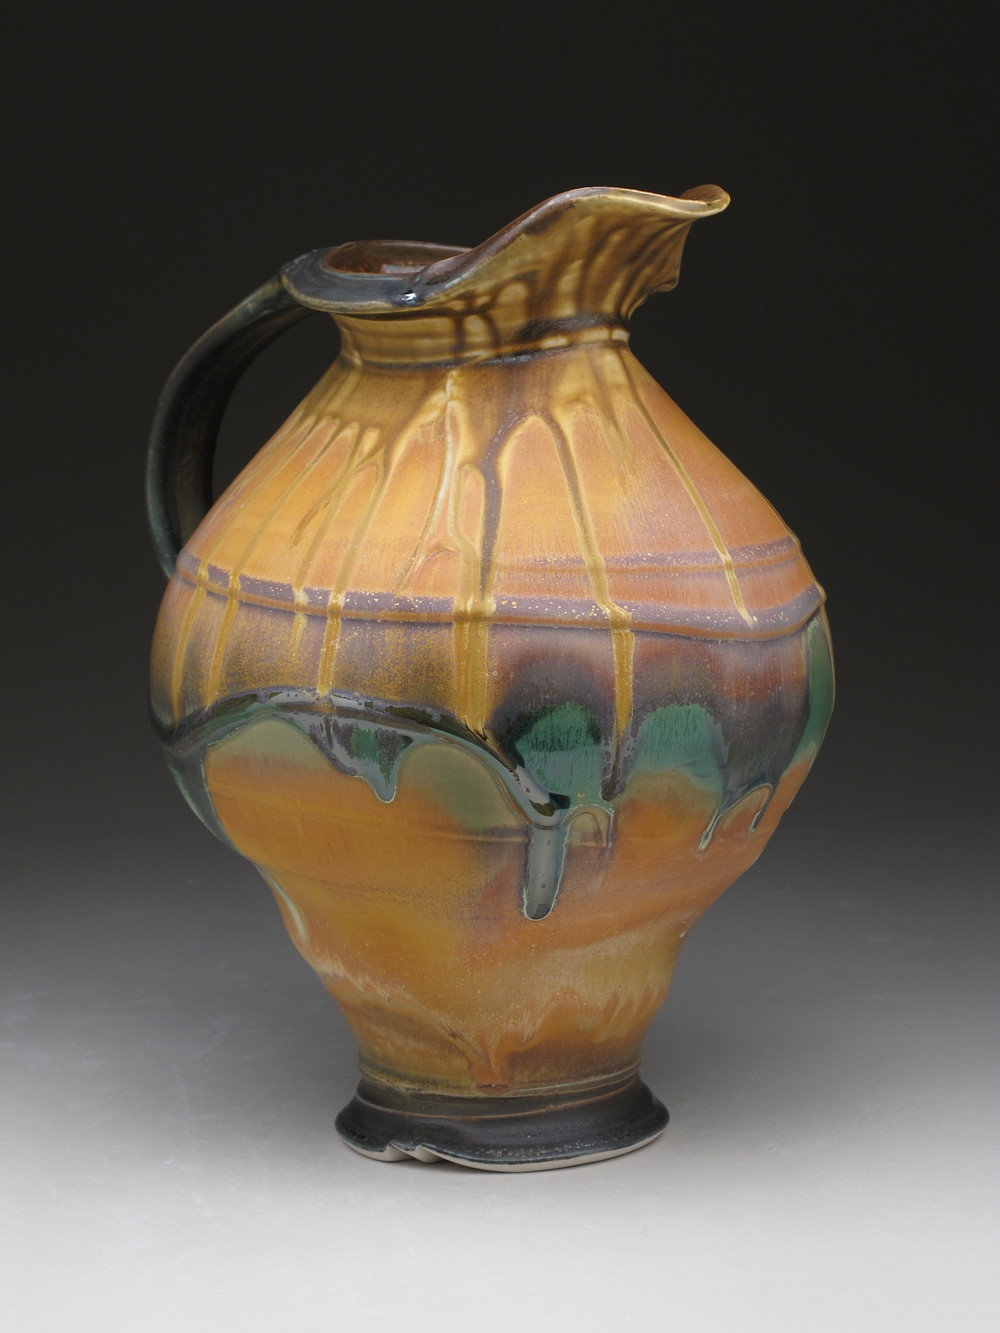 "Melon Pitcher, thrown and altered, ribbed slip design, multiple glaze application, ^8 electric fired, 12"" x 9"" x 8"", 2015"